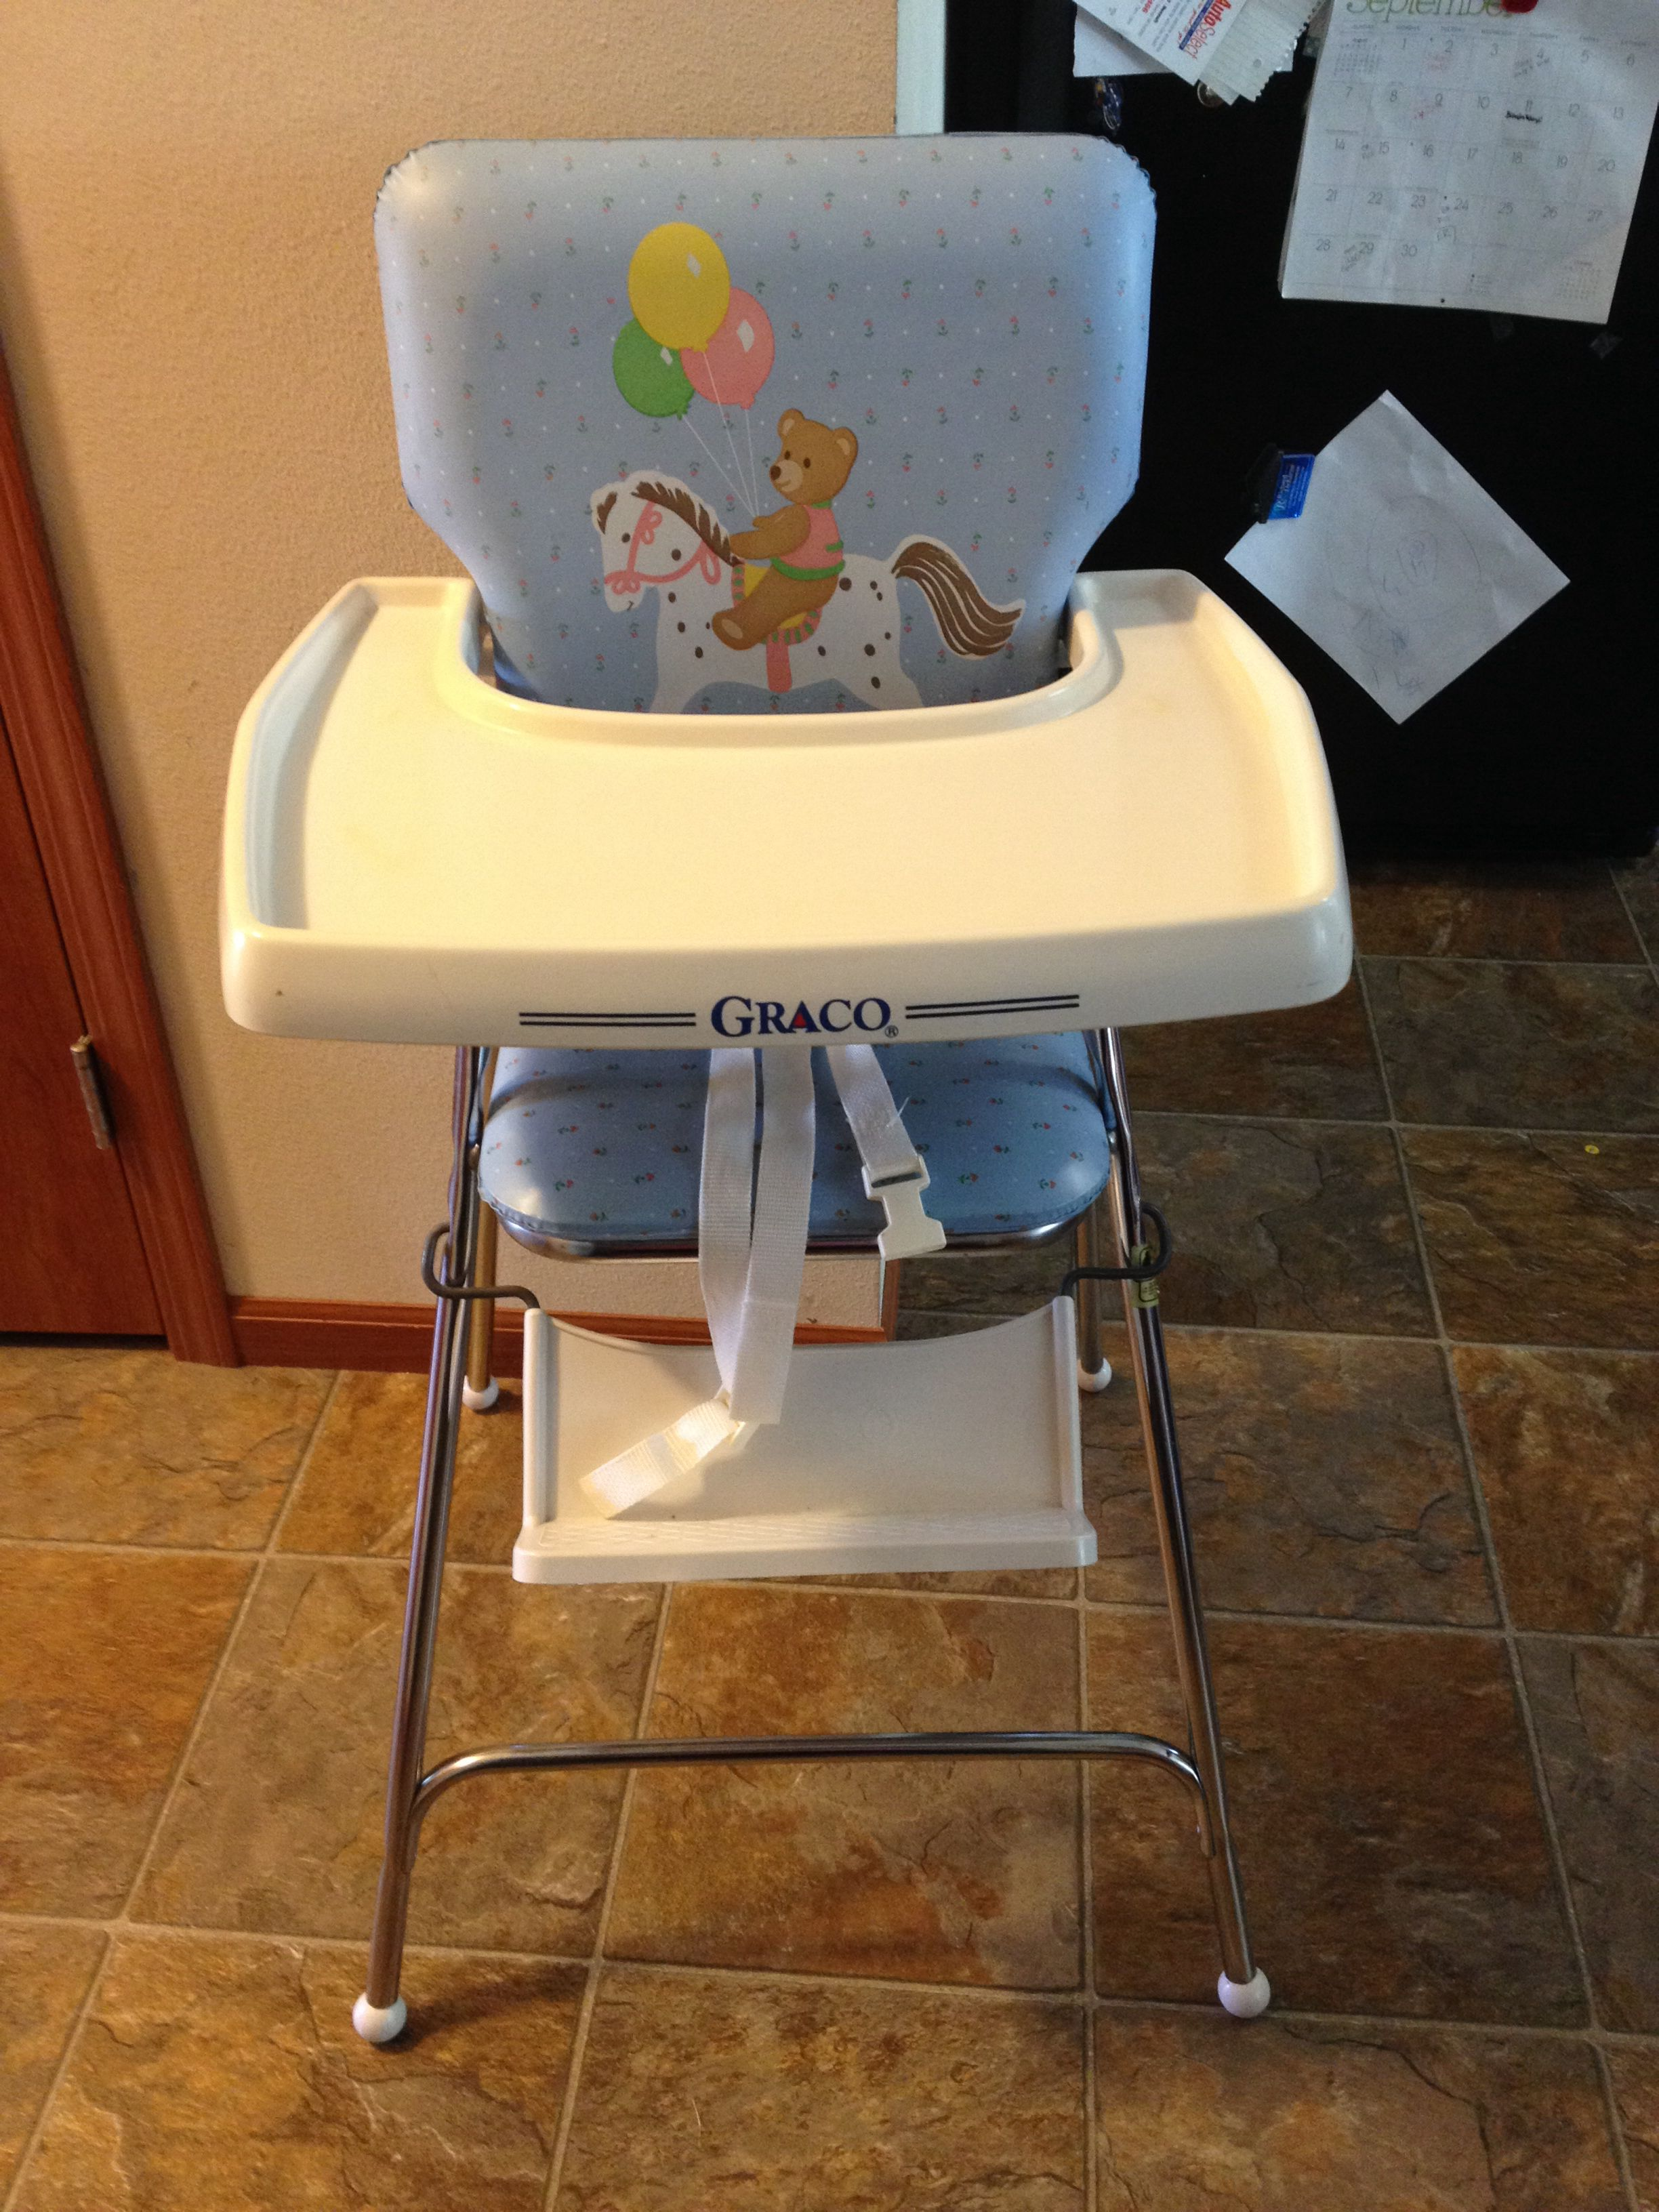 Graco High Chair Late 80 S Vintage Baby Gear Vintage High